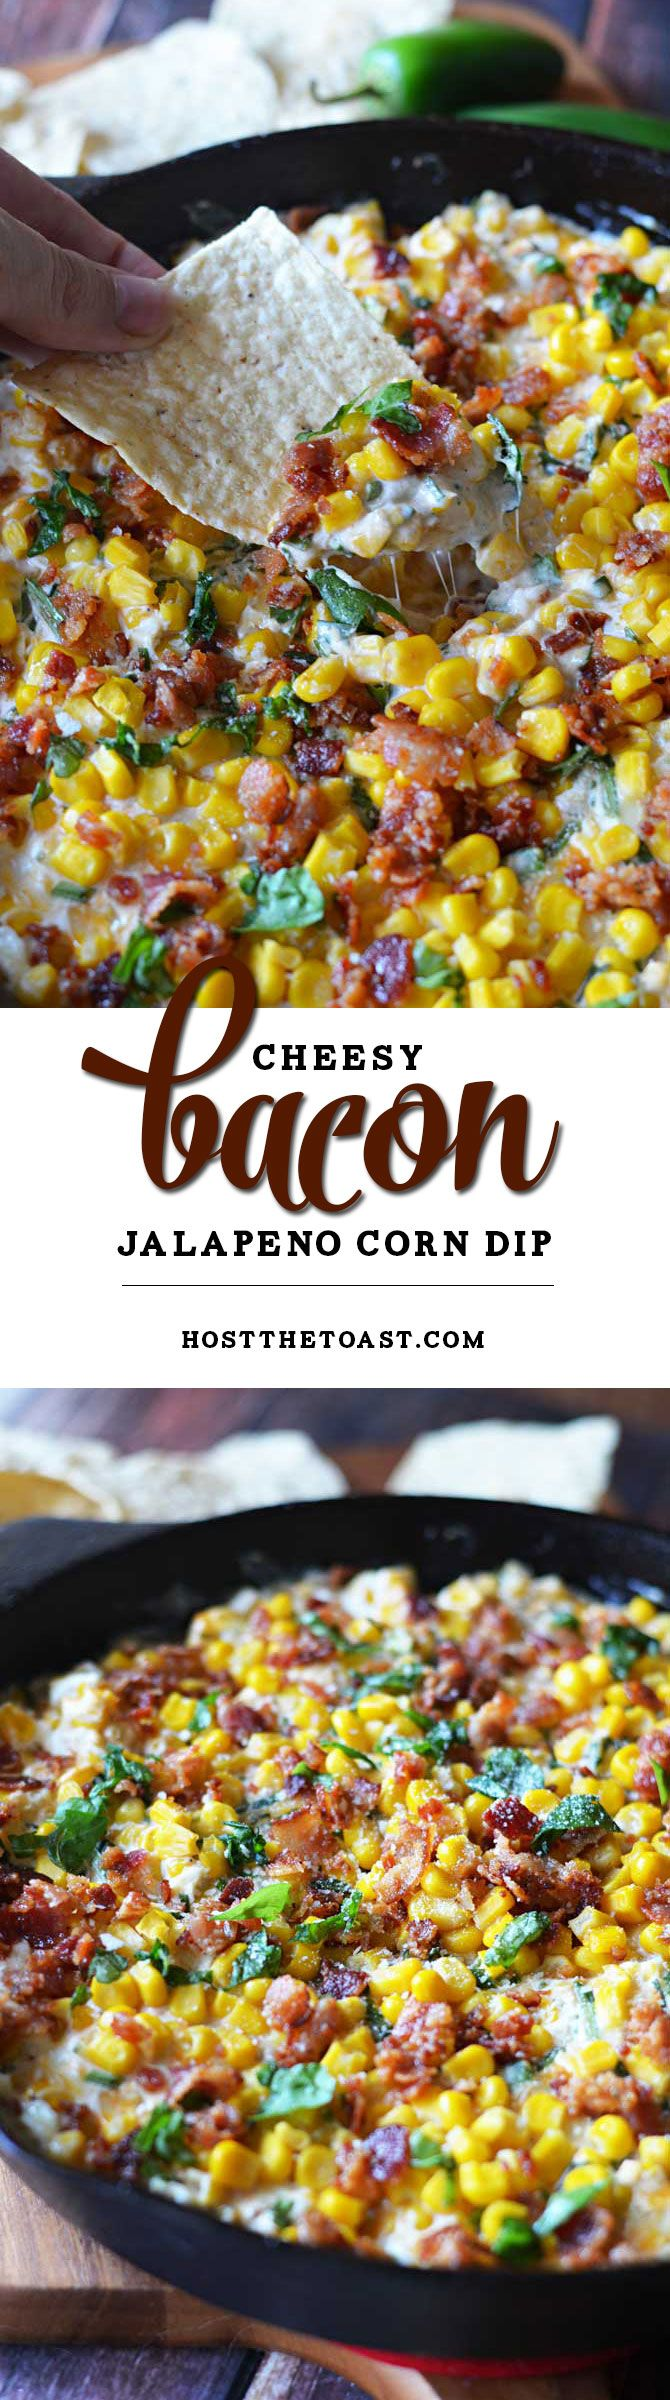 "Cheesy Bacon Jalapeño Corn Dip ""It was delicious, but next time I think I'll do half the corn and twice the mozzarella."""